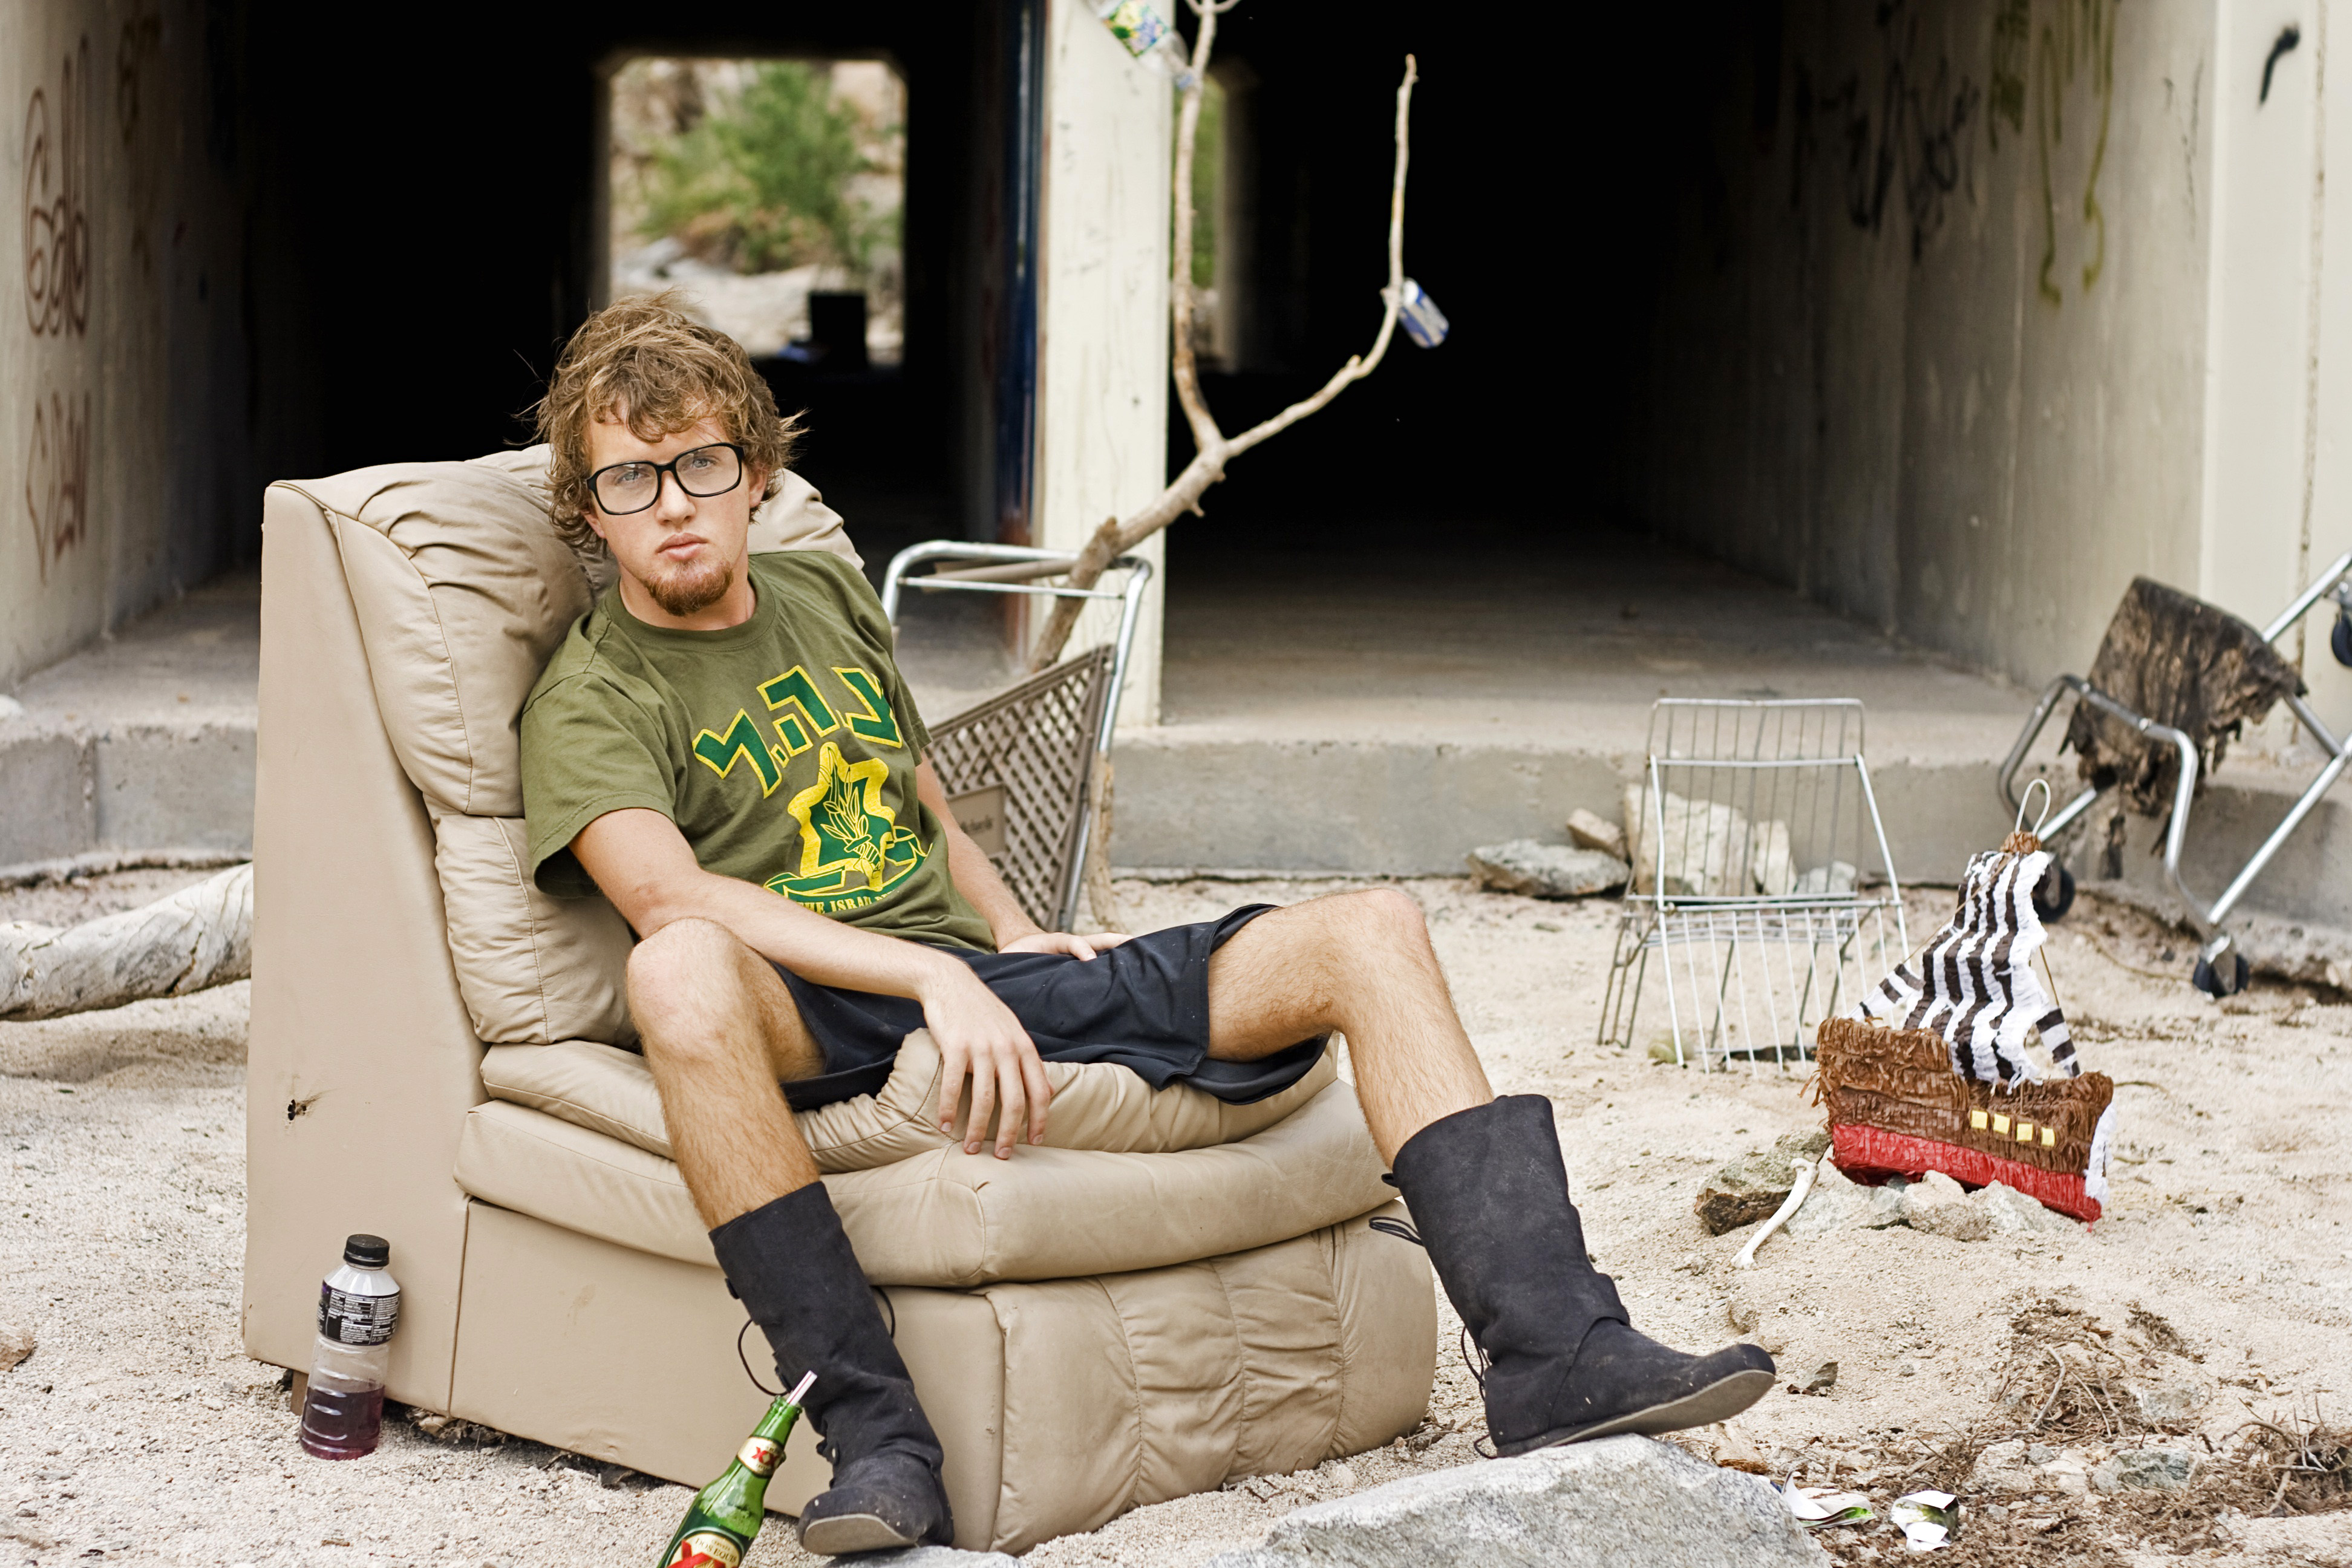 poor-man-sitting-on-couch-on-abandoned-house image - Free